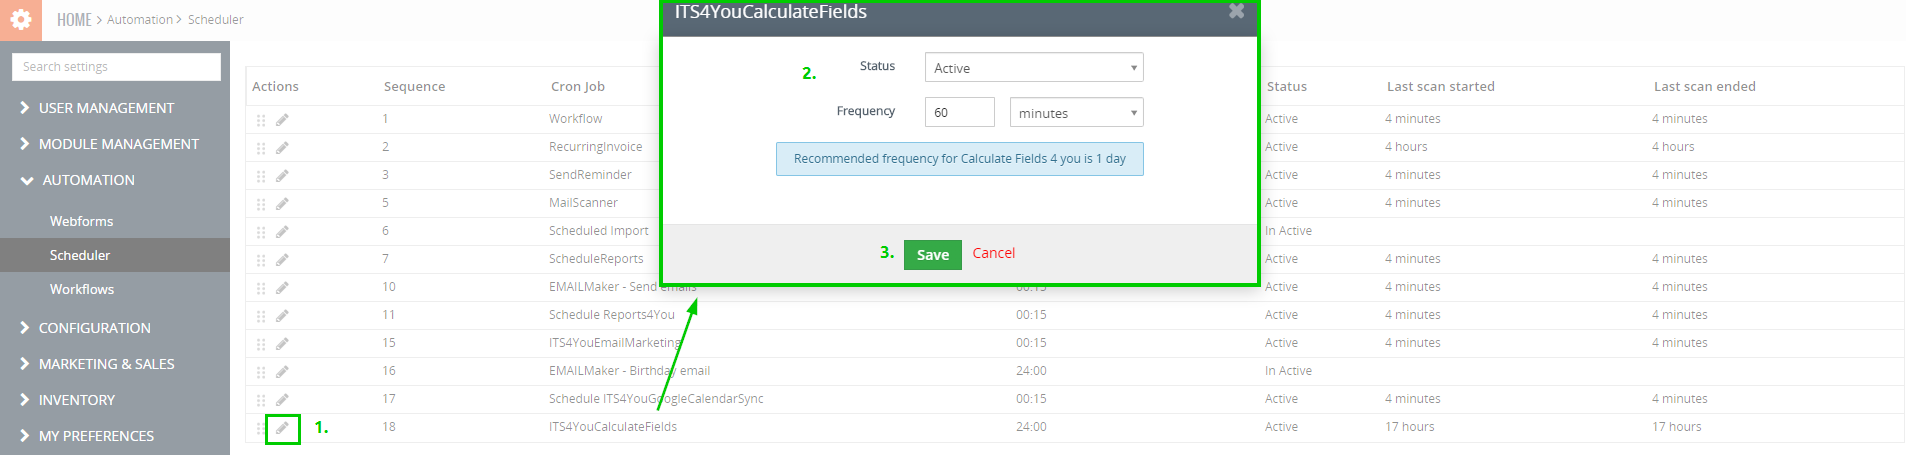 the calculations provided for Calculated Fields are done automatically based on scheduler